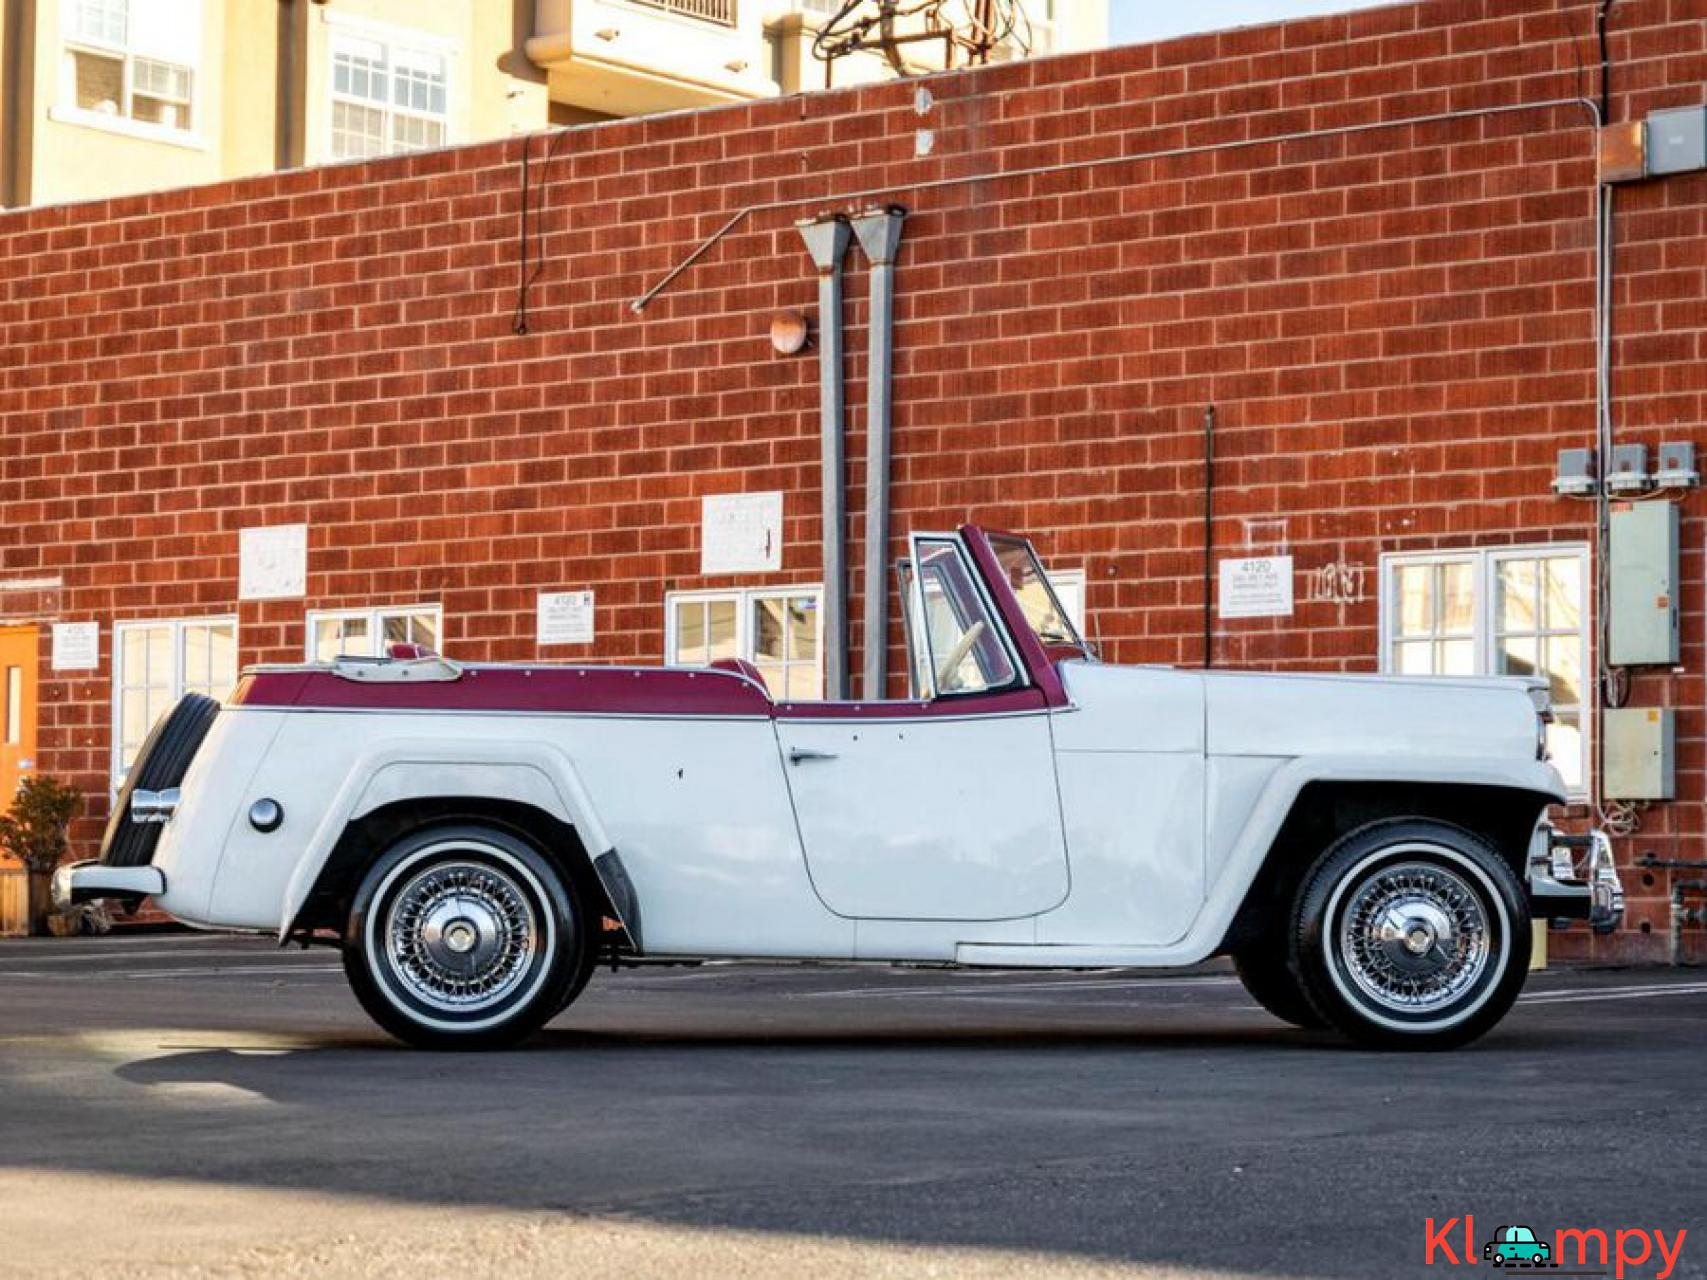 1951 Willys Jeepster Convertible 134.2 cu in 2.2 L - 3/17